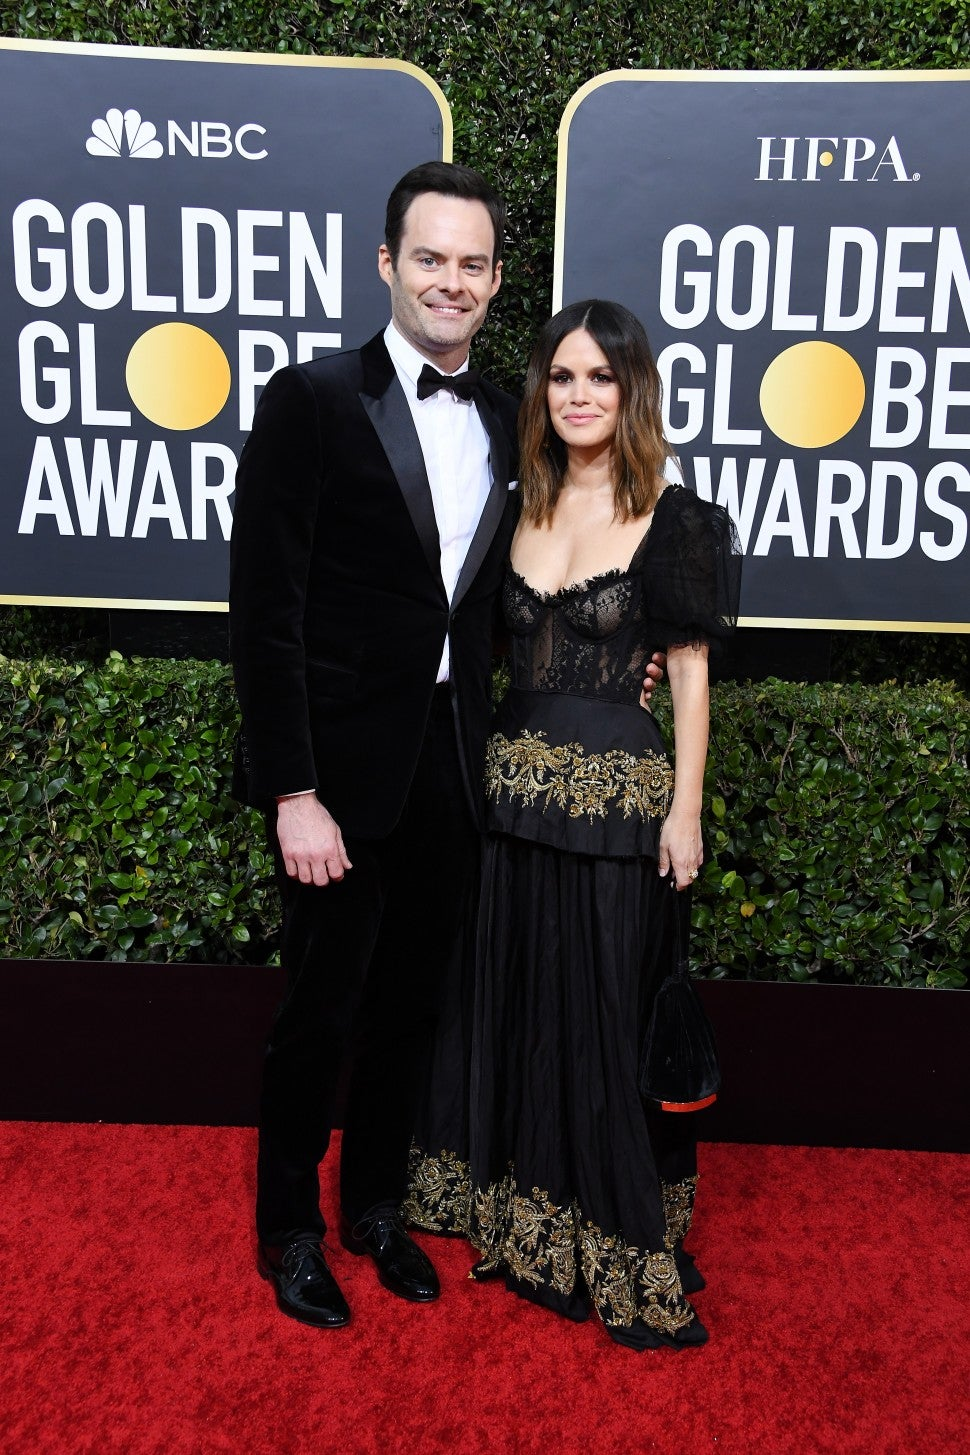 Bill Hader and Rachel Bilson at 2020 golden globes